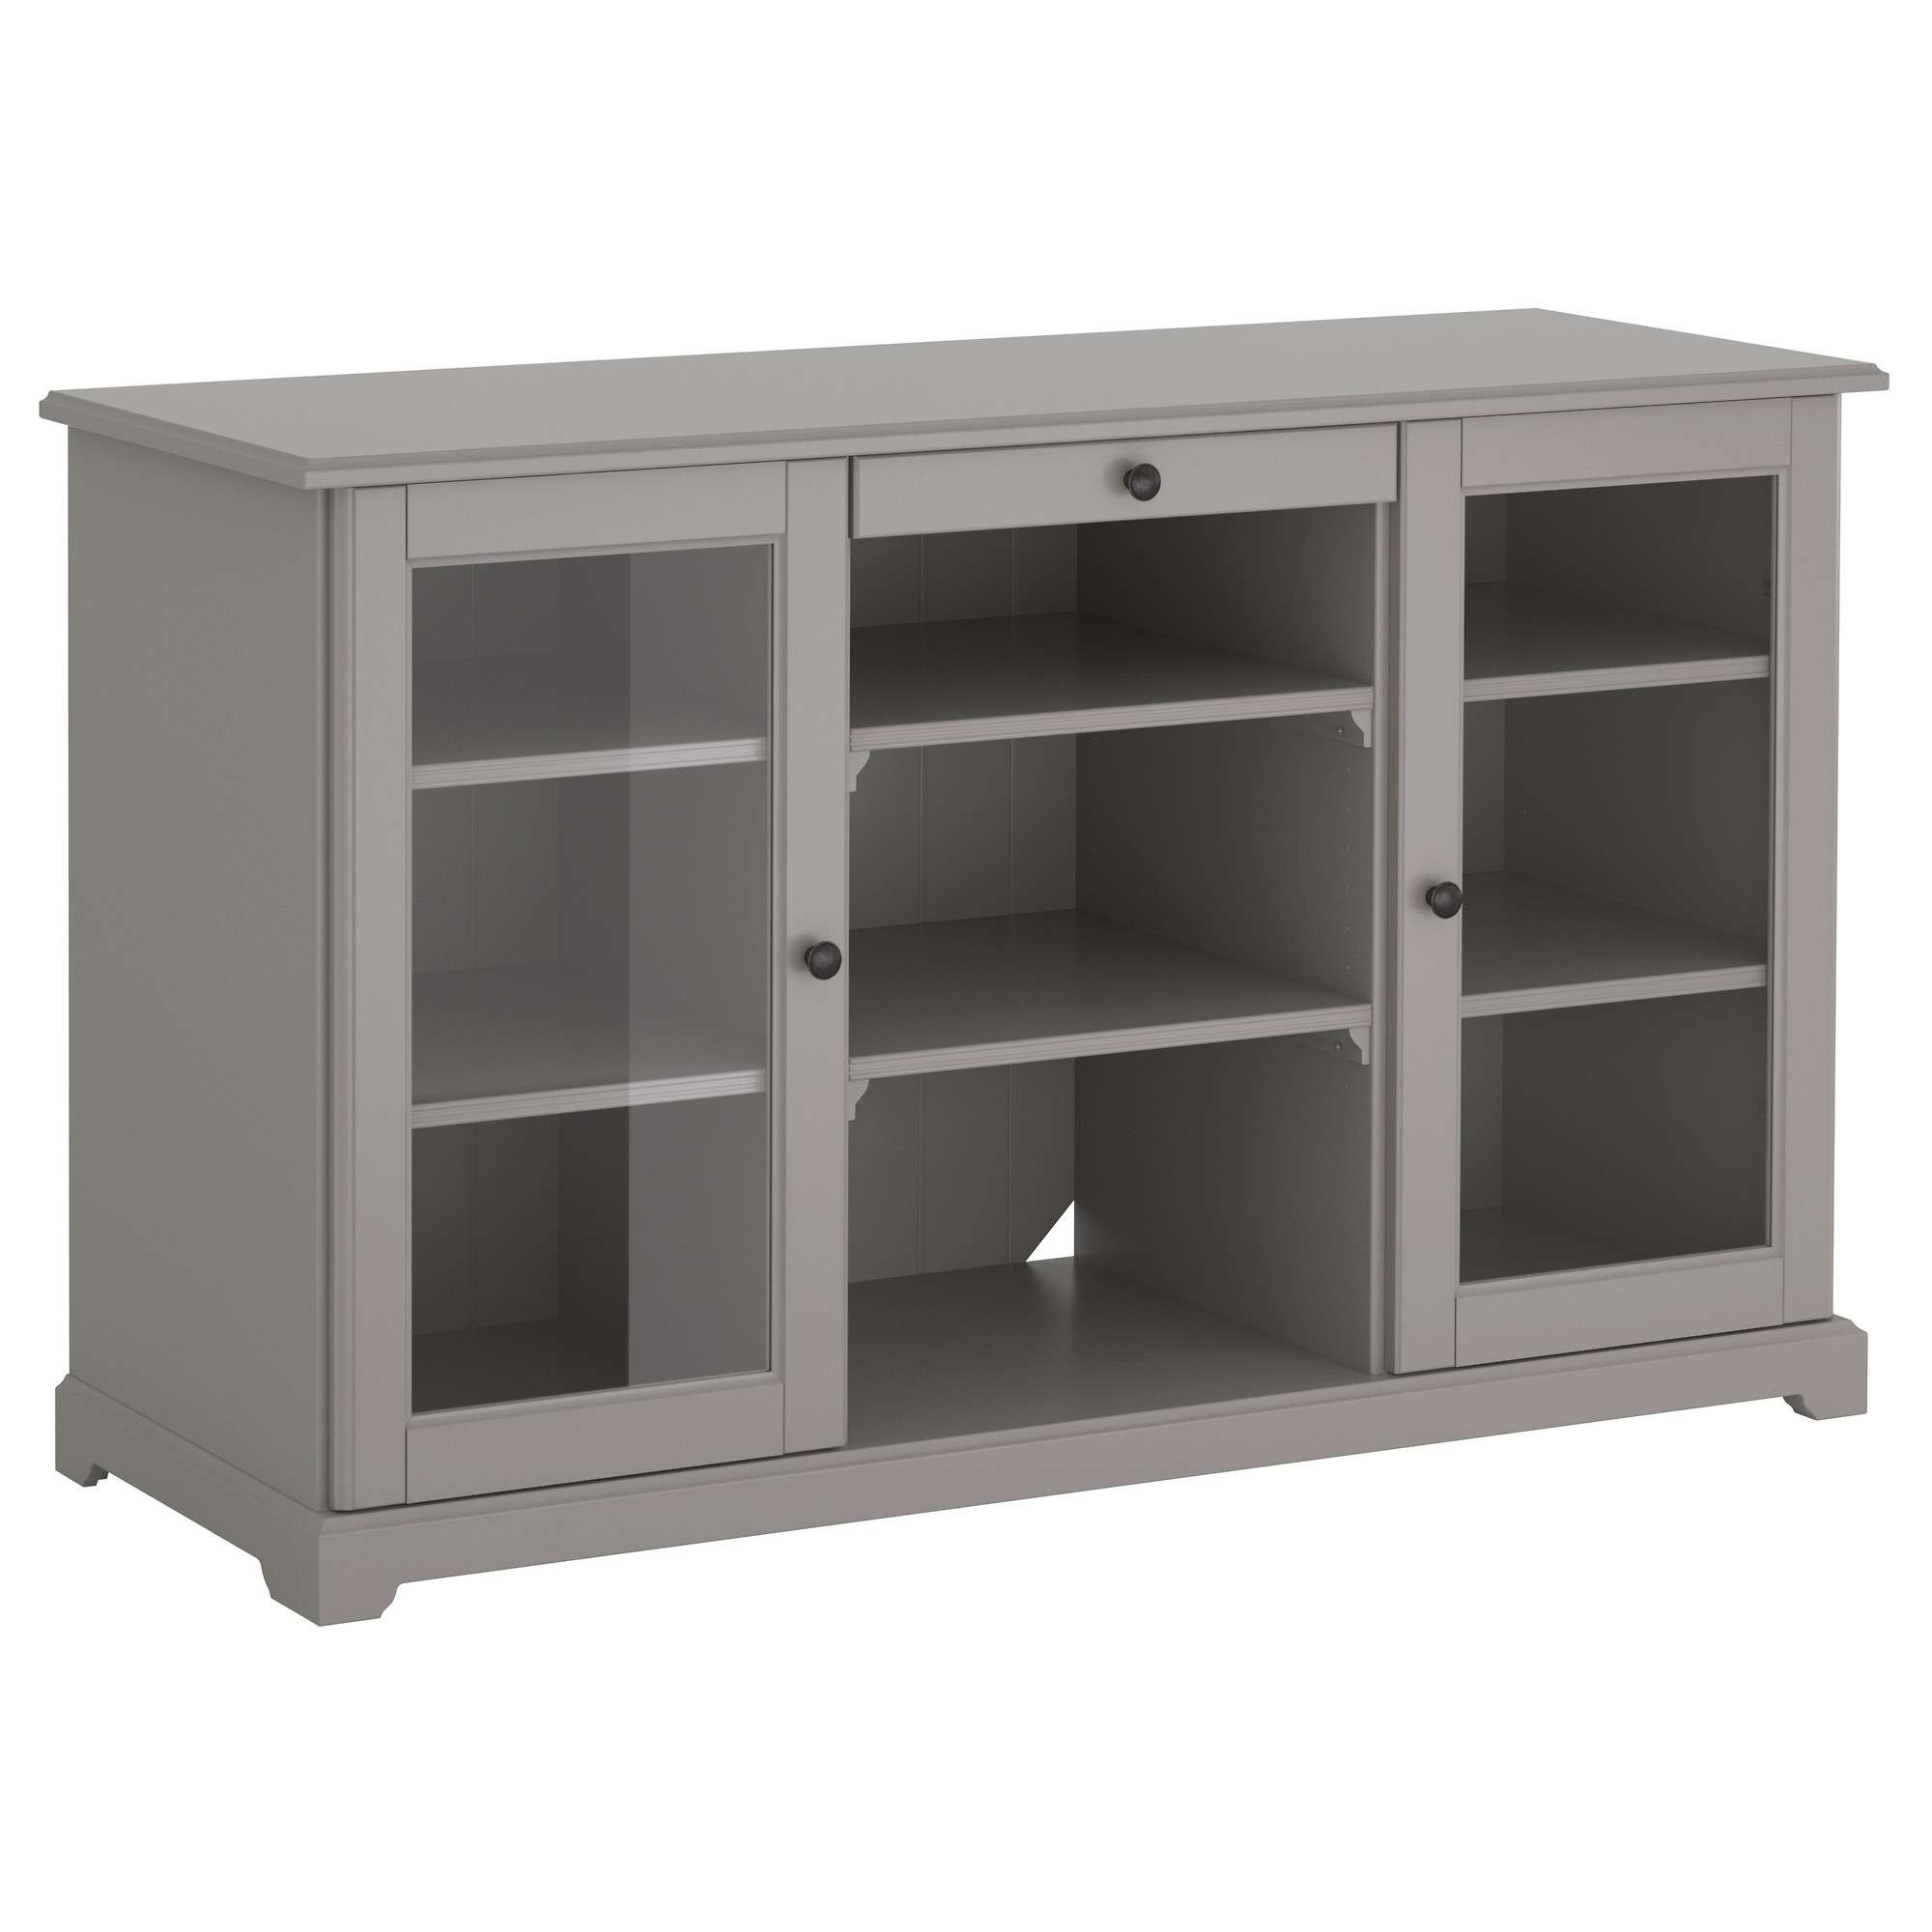 Liatorp Sideboard Grey 145x87 Cm – Ikea For Grey Sideboards (View 12 of 20)